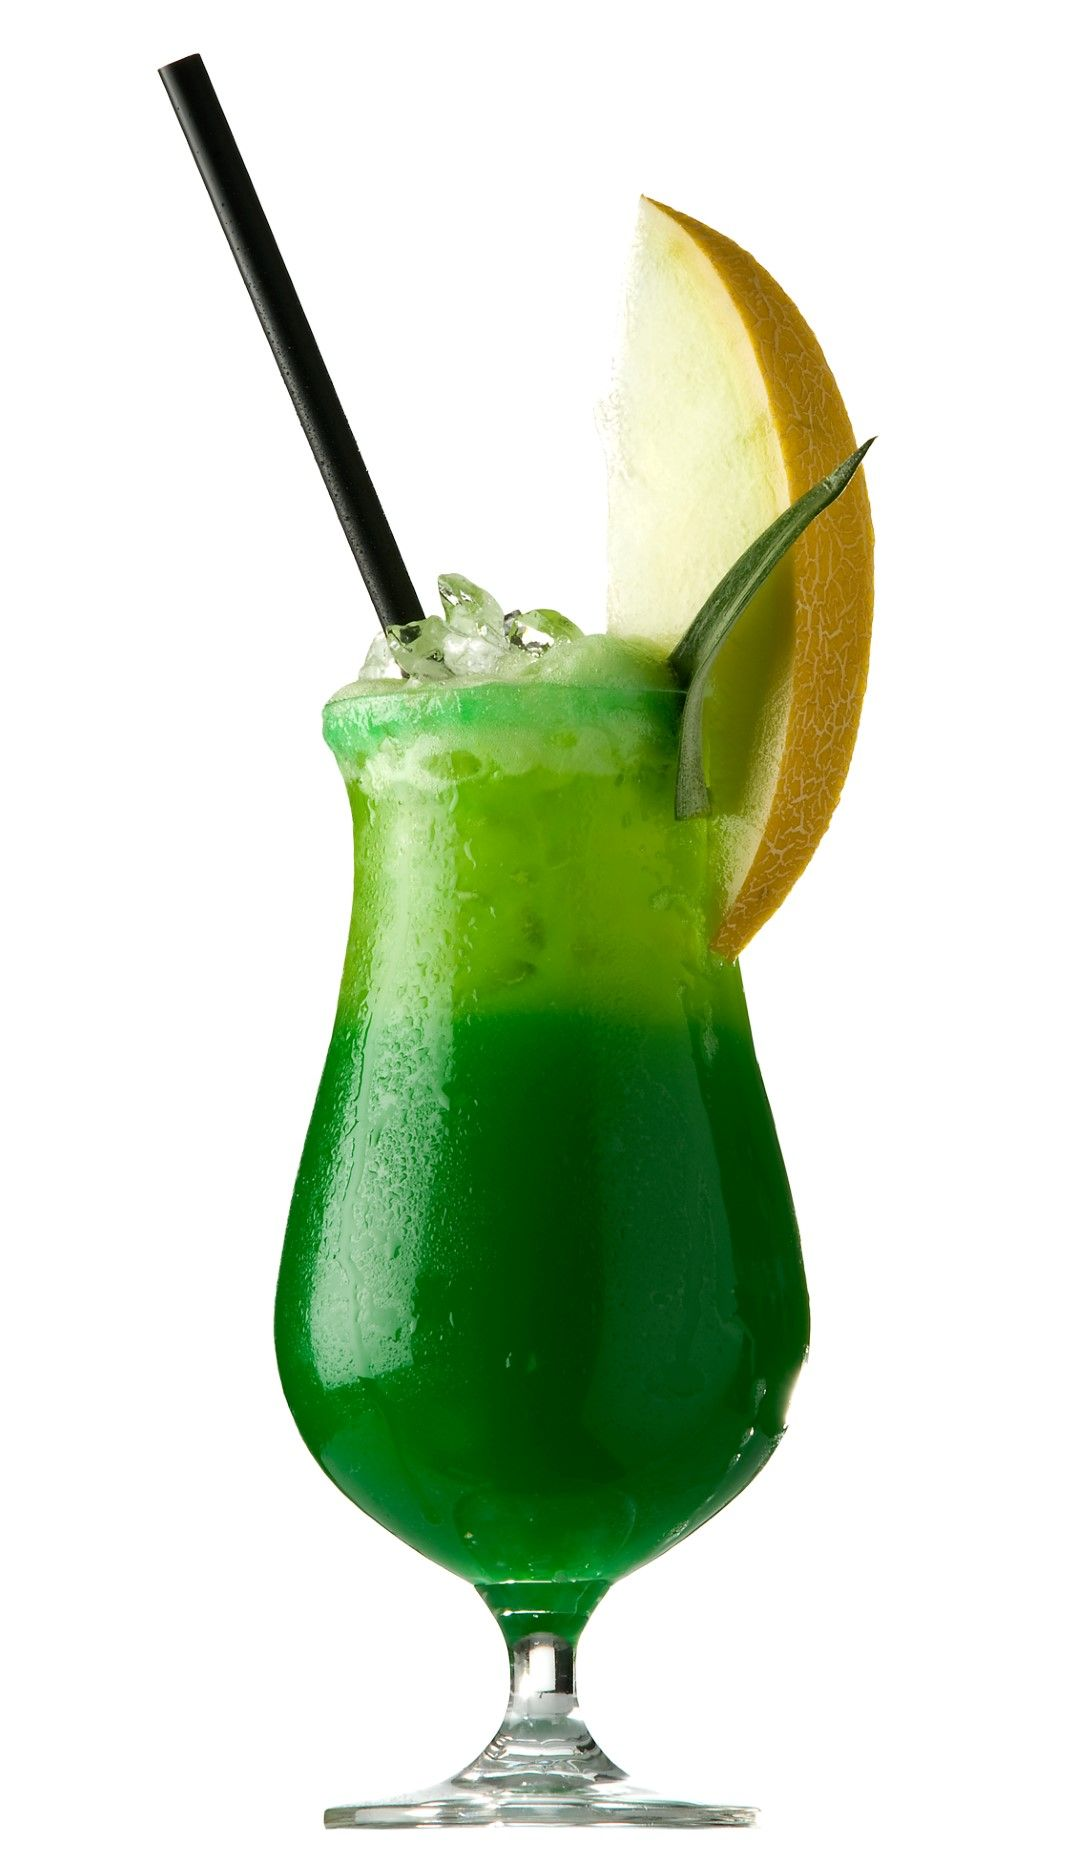 Green eyed monster cocktail recipe summer mix of melon for Cocktail curacao